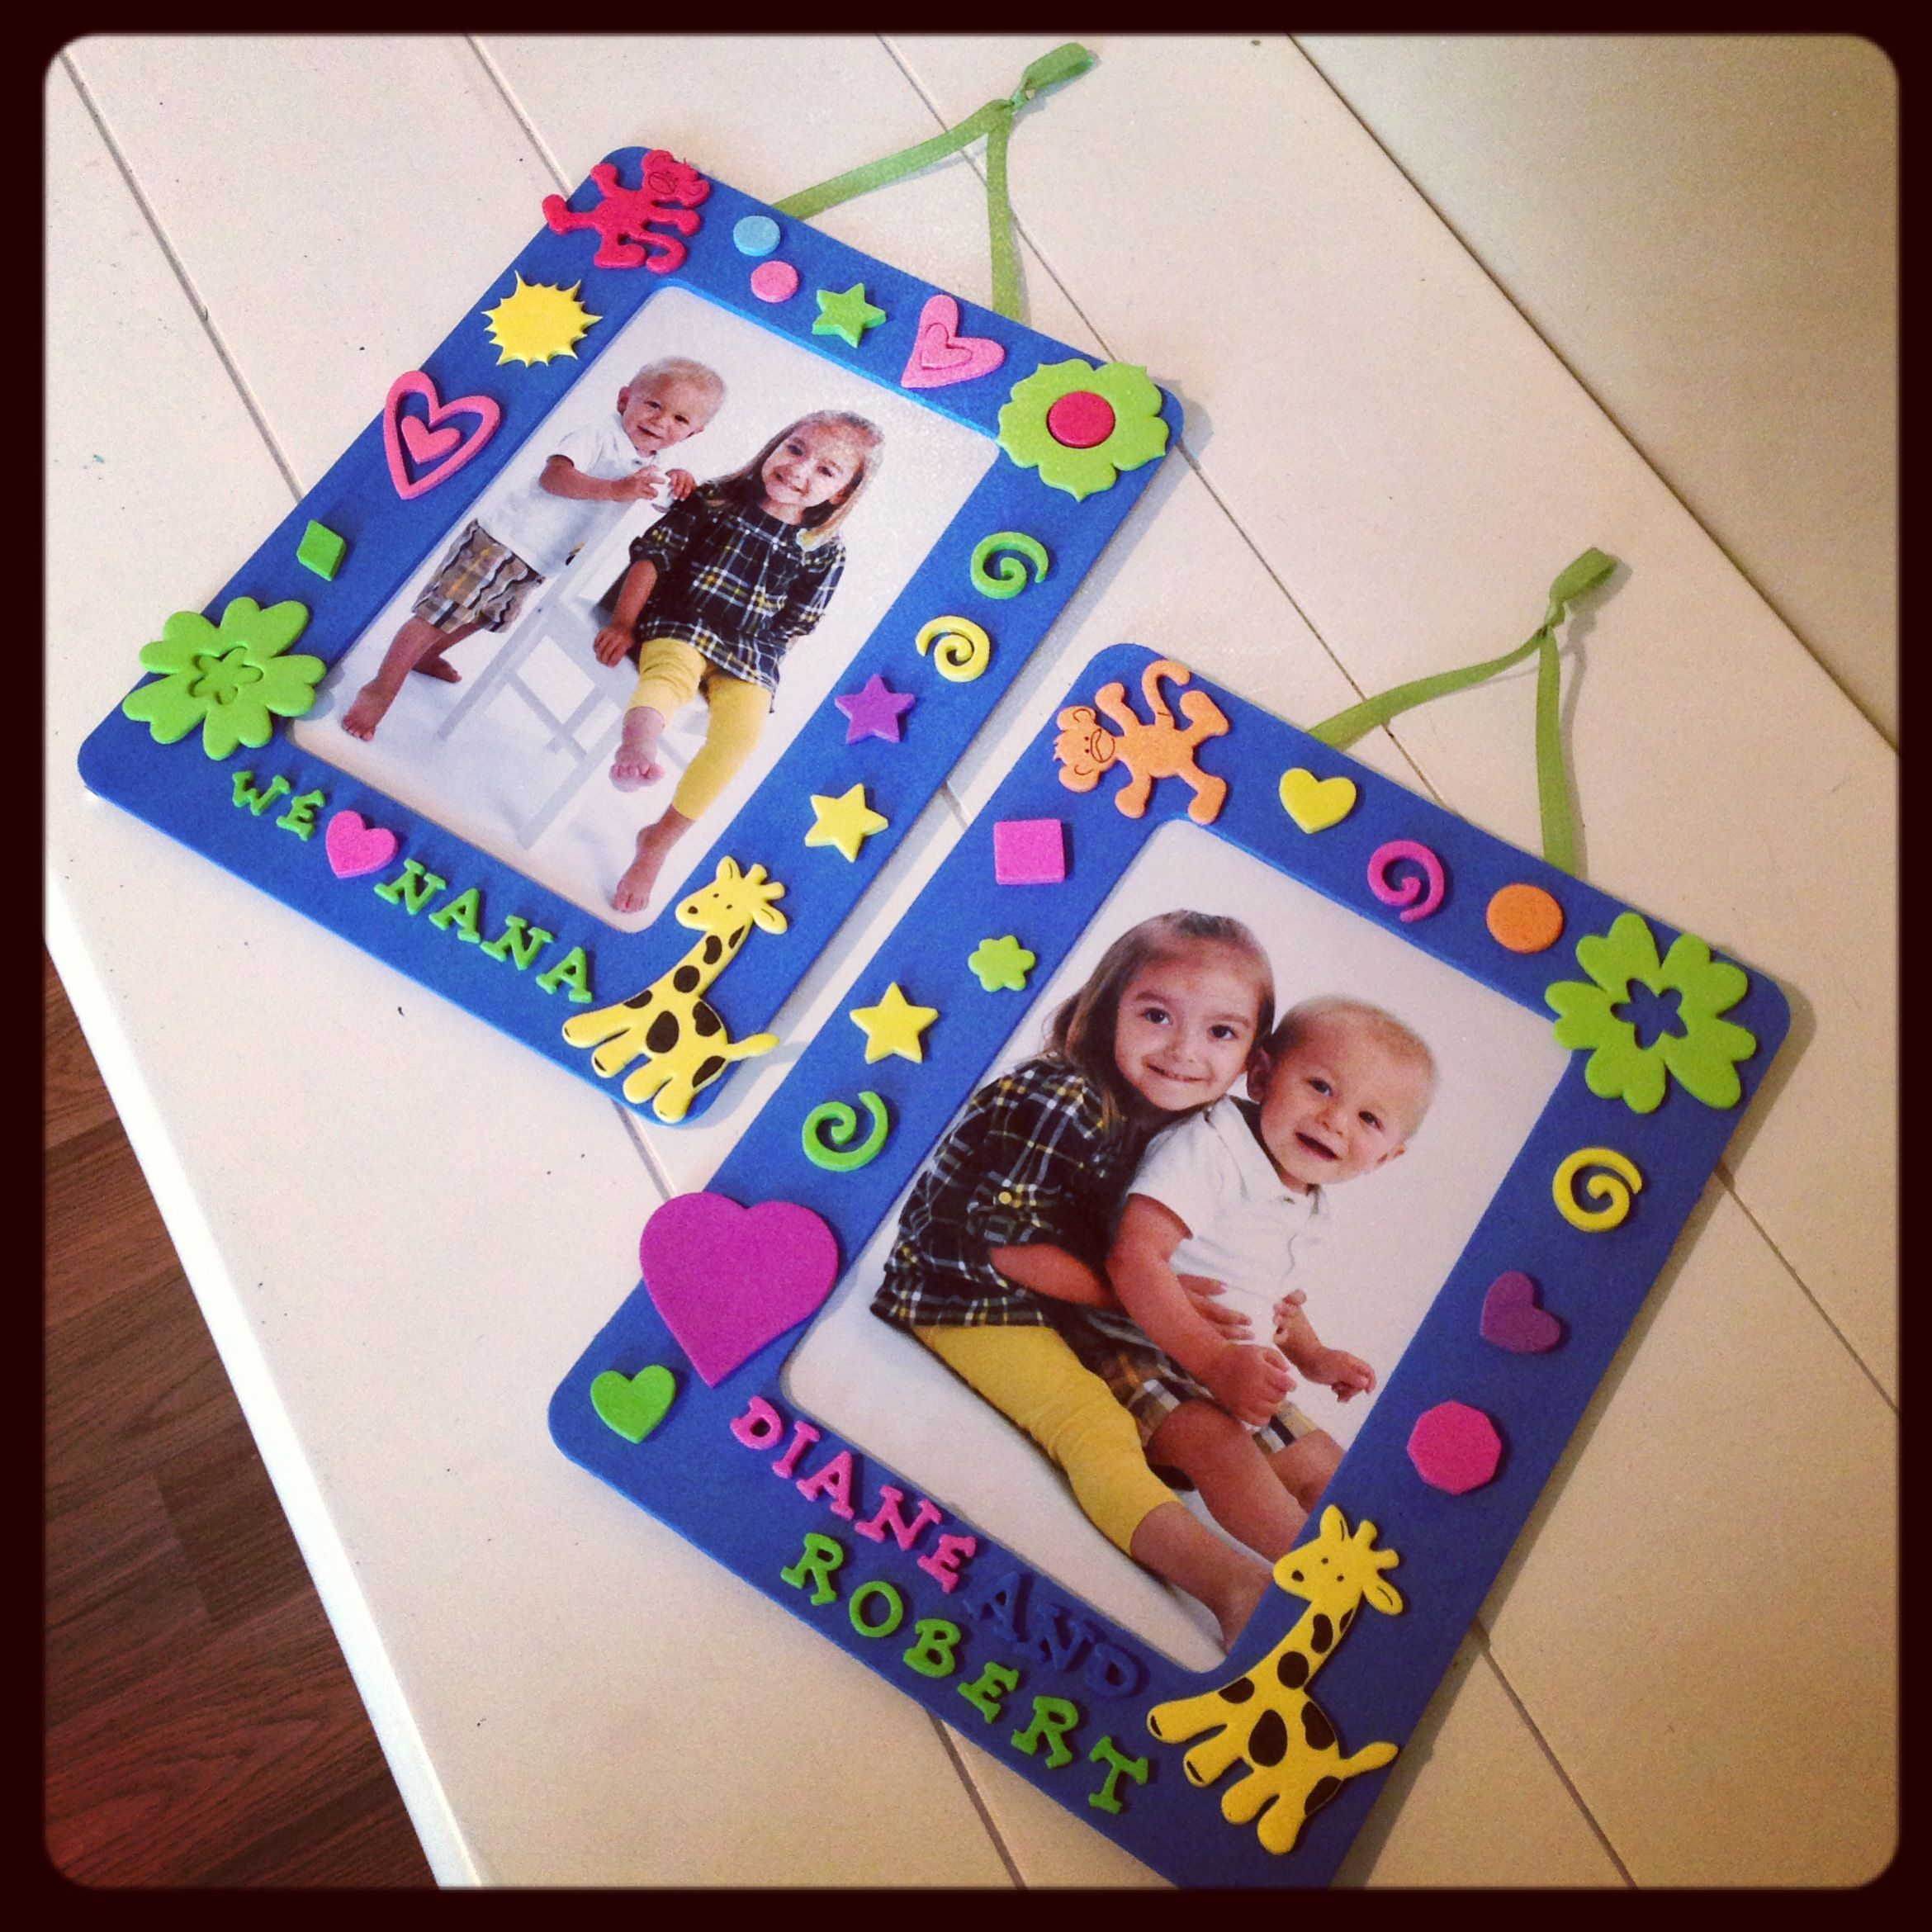 Memory foam for crafts - We Have Done A Bunch Of Things With Foam But I Just Love These Frames